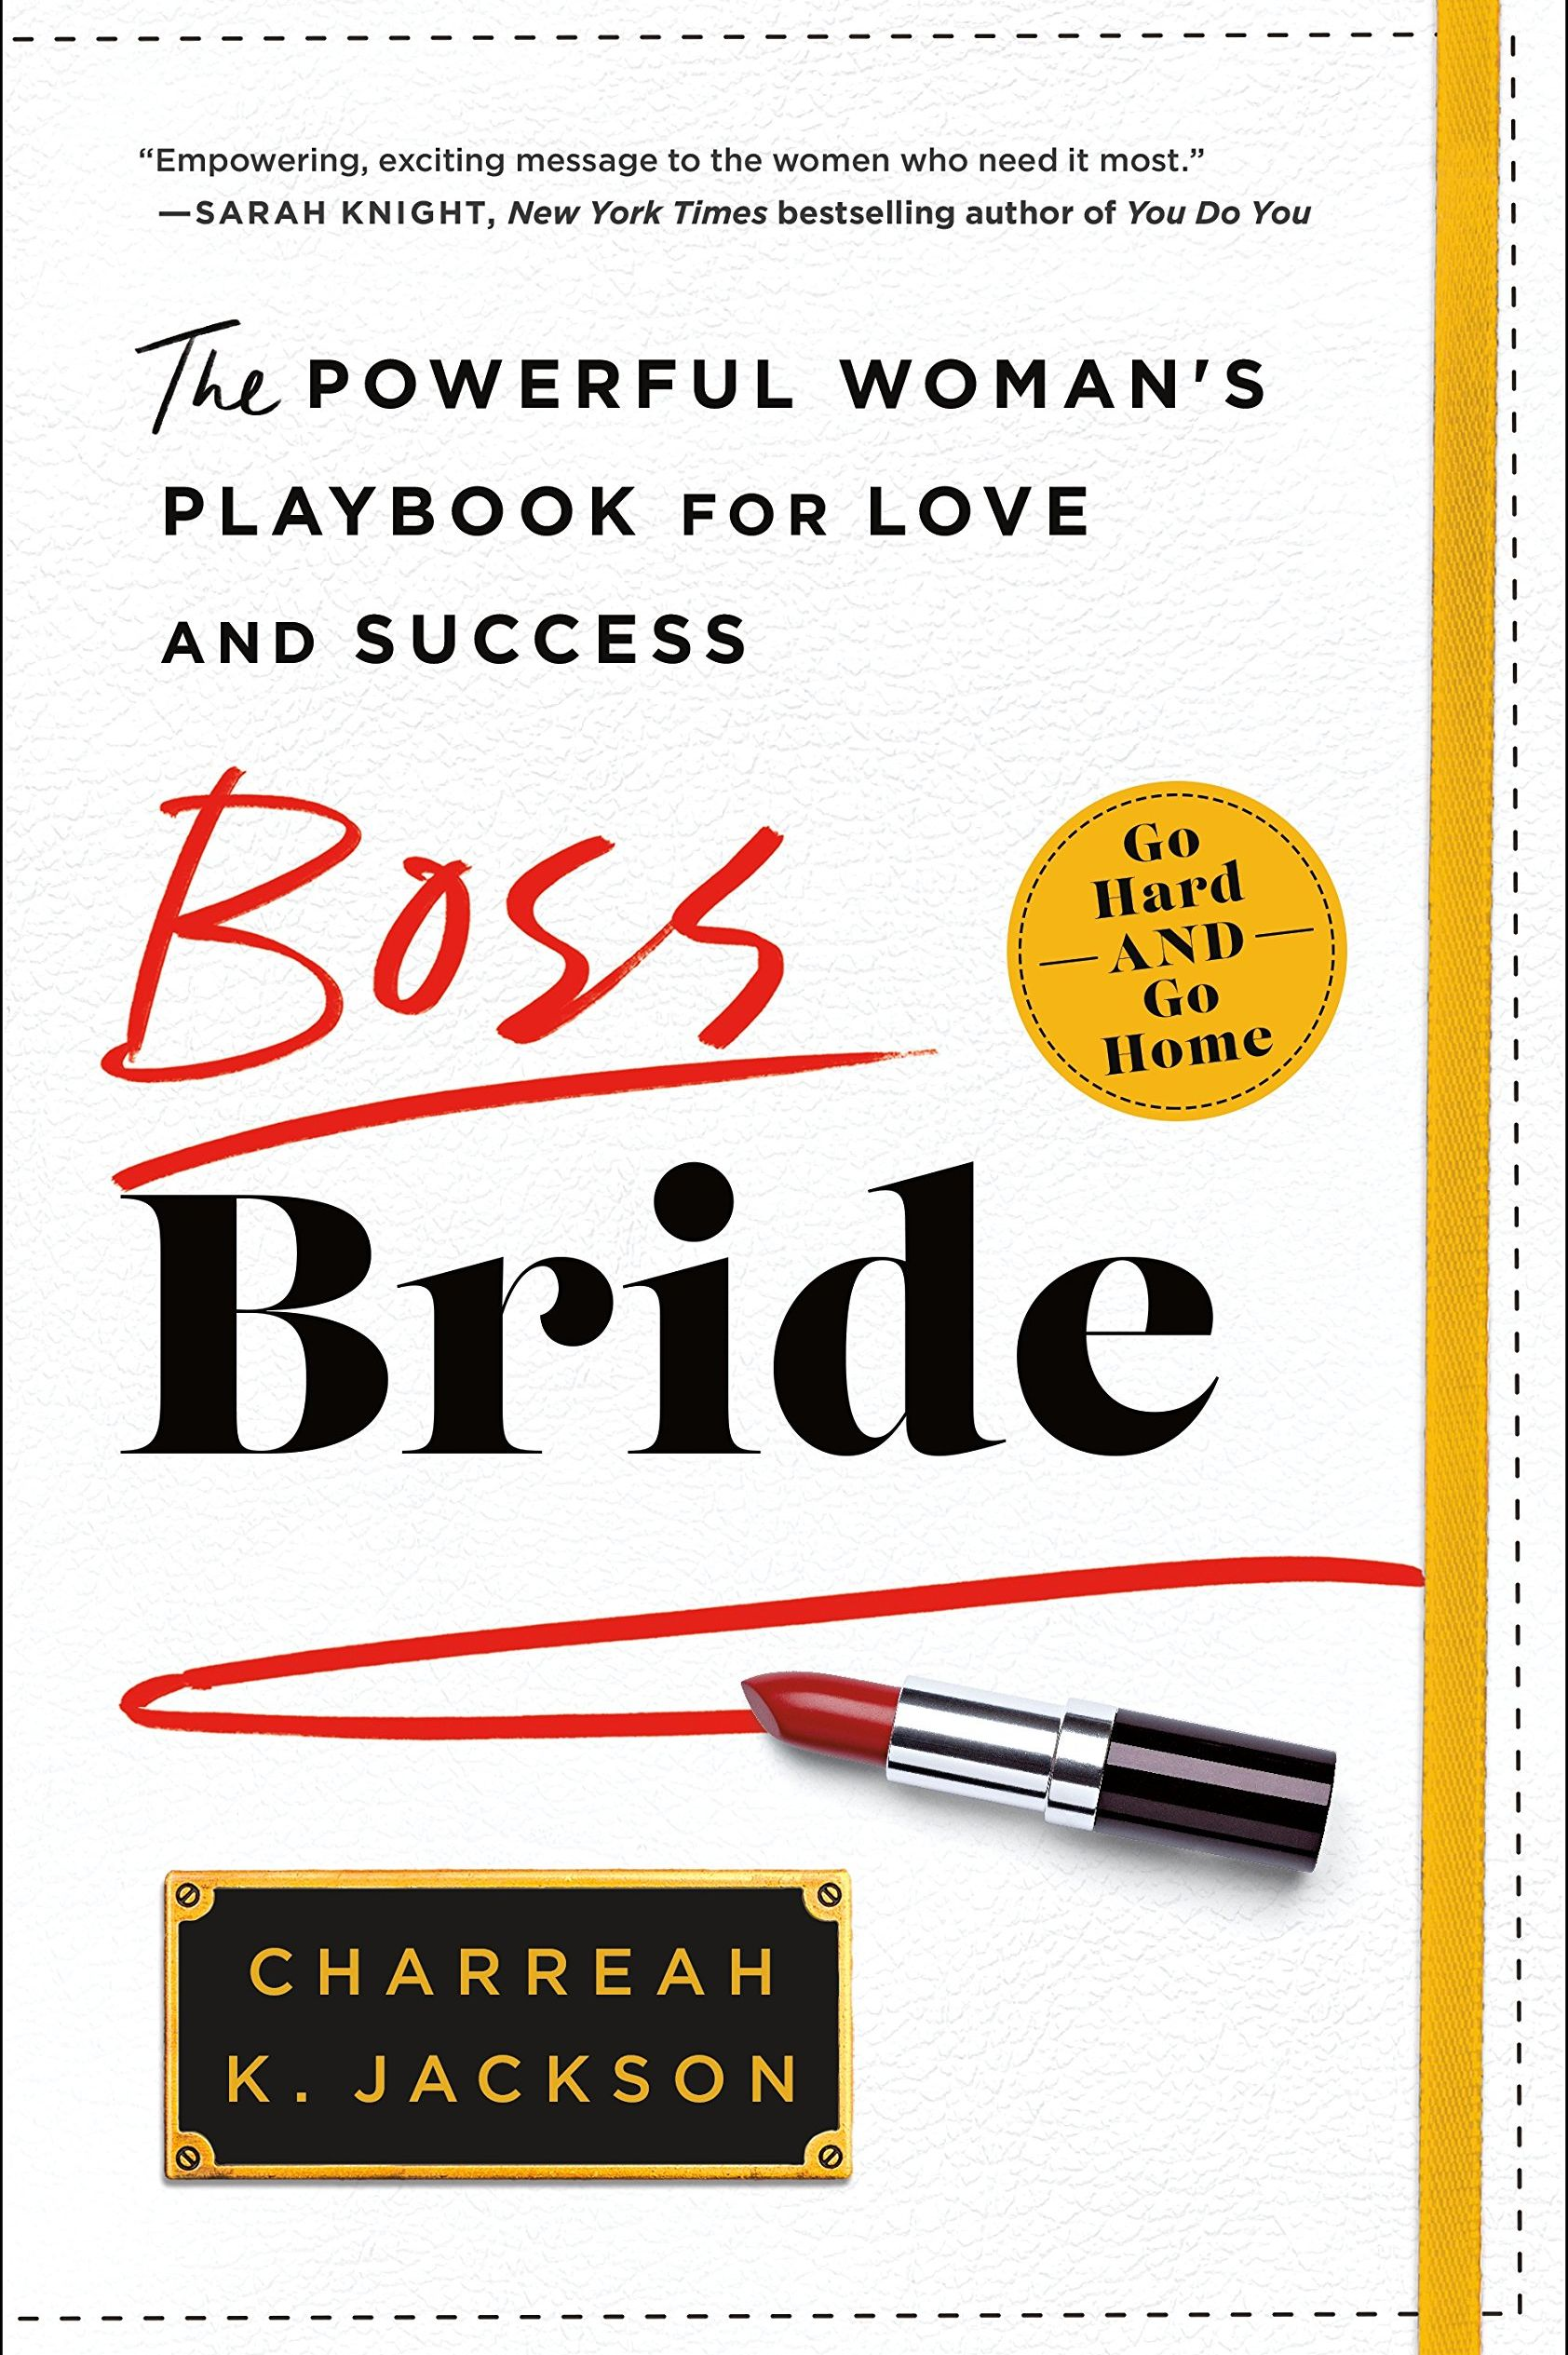 'Boss Bride: The Powerful Woman's Playbook for Love and Success' by Charreah Jackson